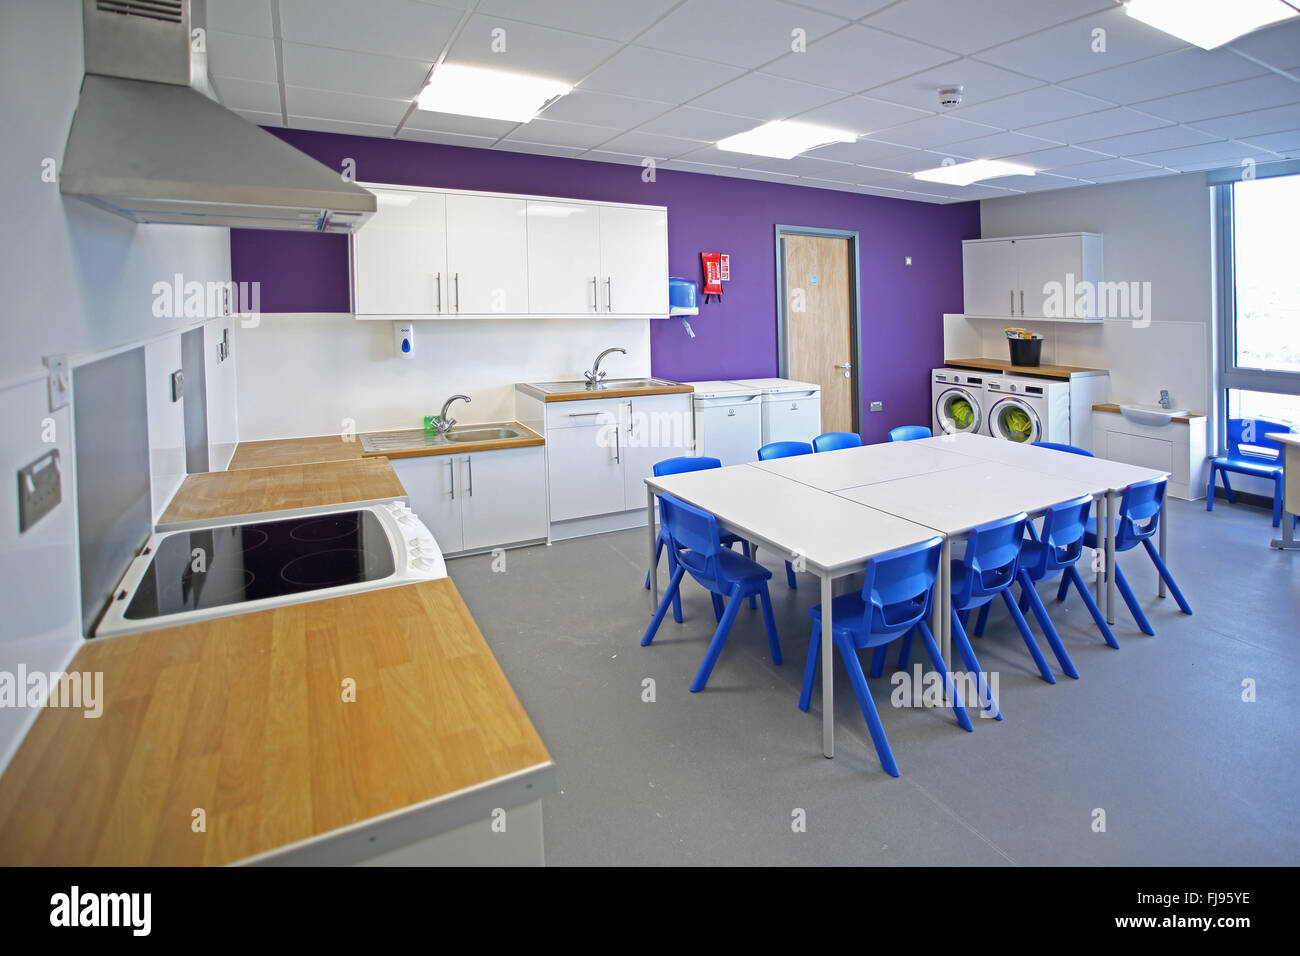 Home economics classroom layout home decor ideas for Home economics classroom decorations